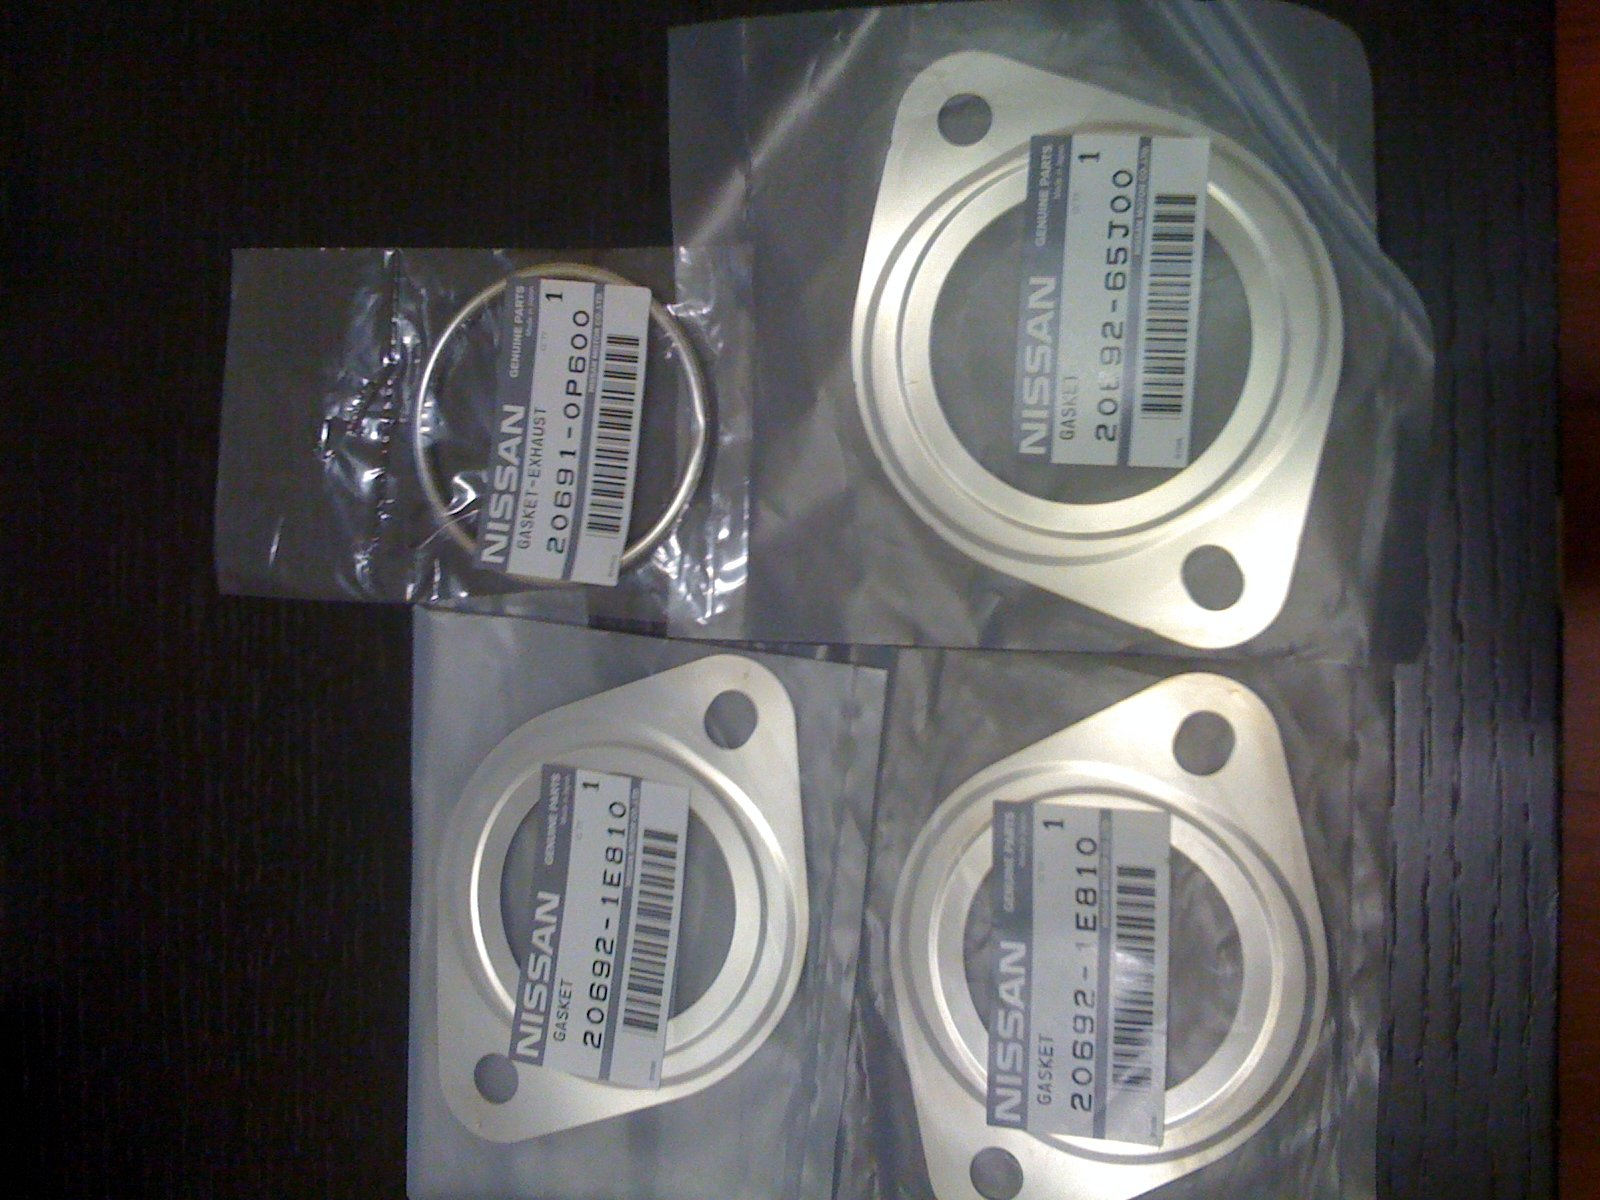 Set of Genuine Nisaan 350z exhaust gaskets - Nissan 350Z Forum